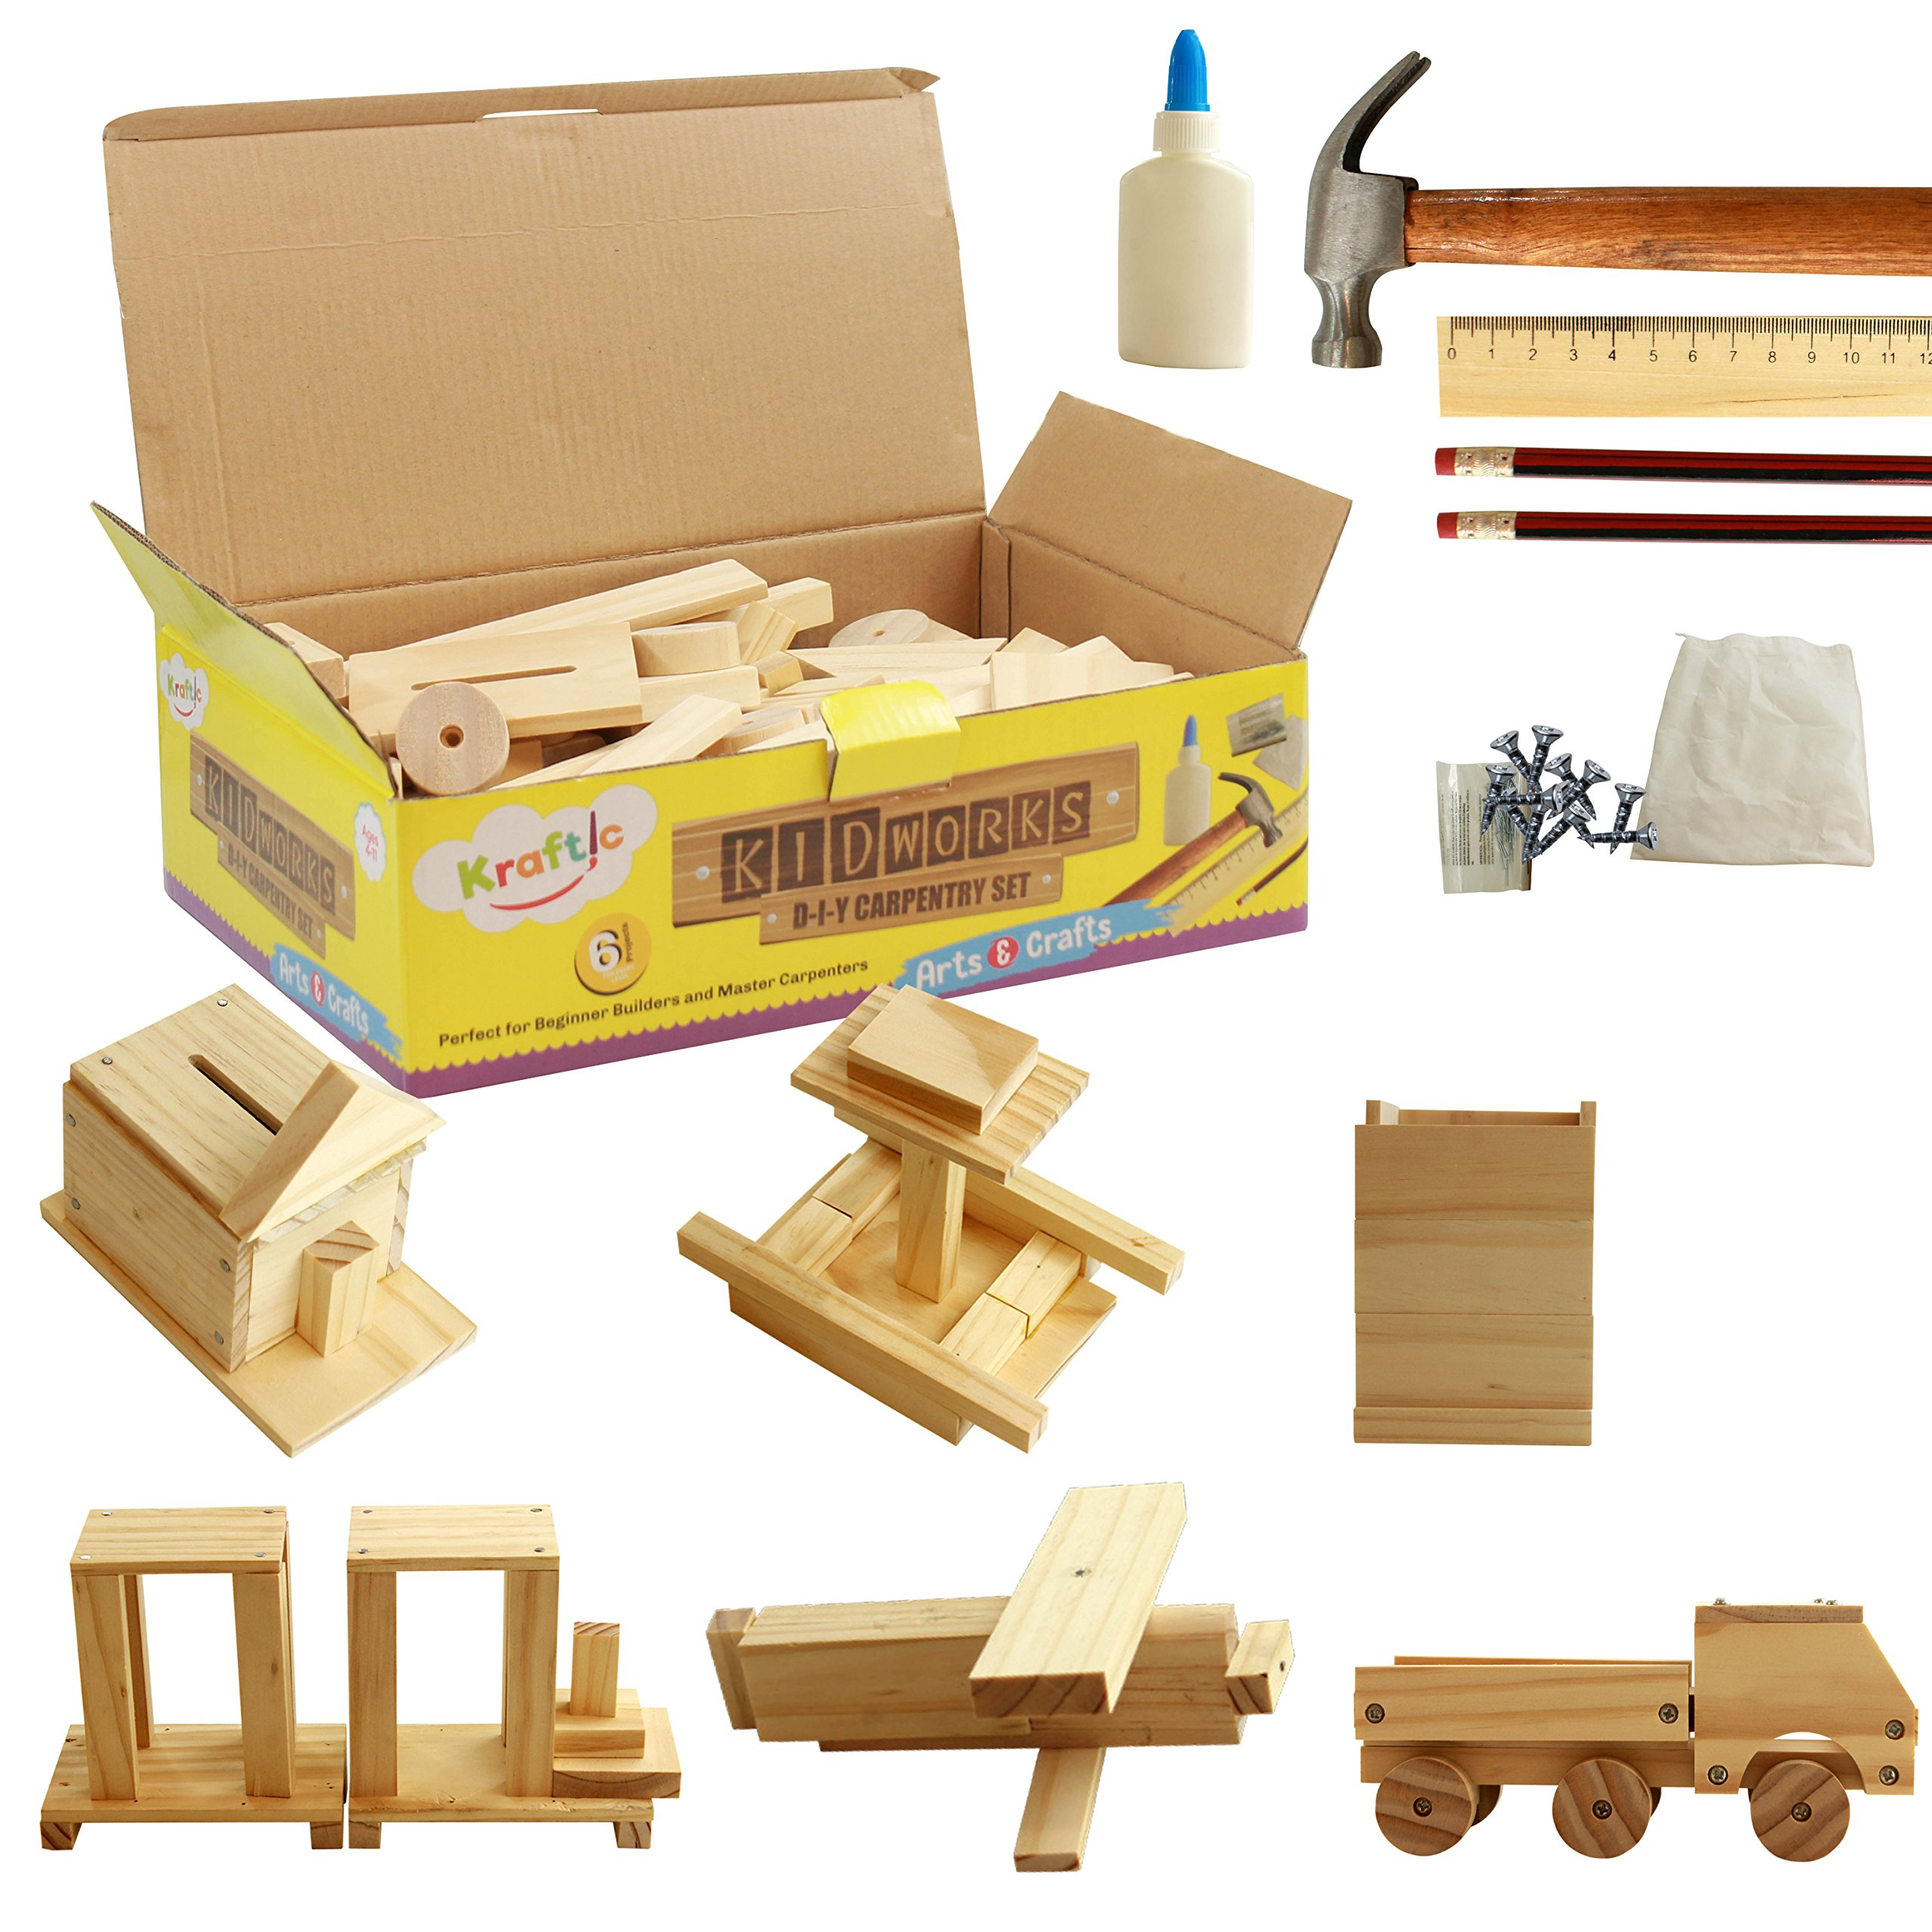 Kraftic DIY Deluxe Carpentry Woodworking Kit with 6 Projects by Kraftic